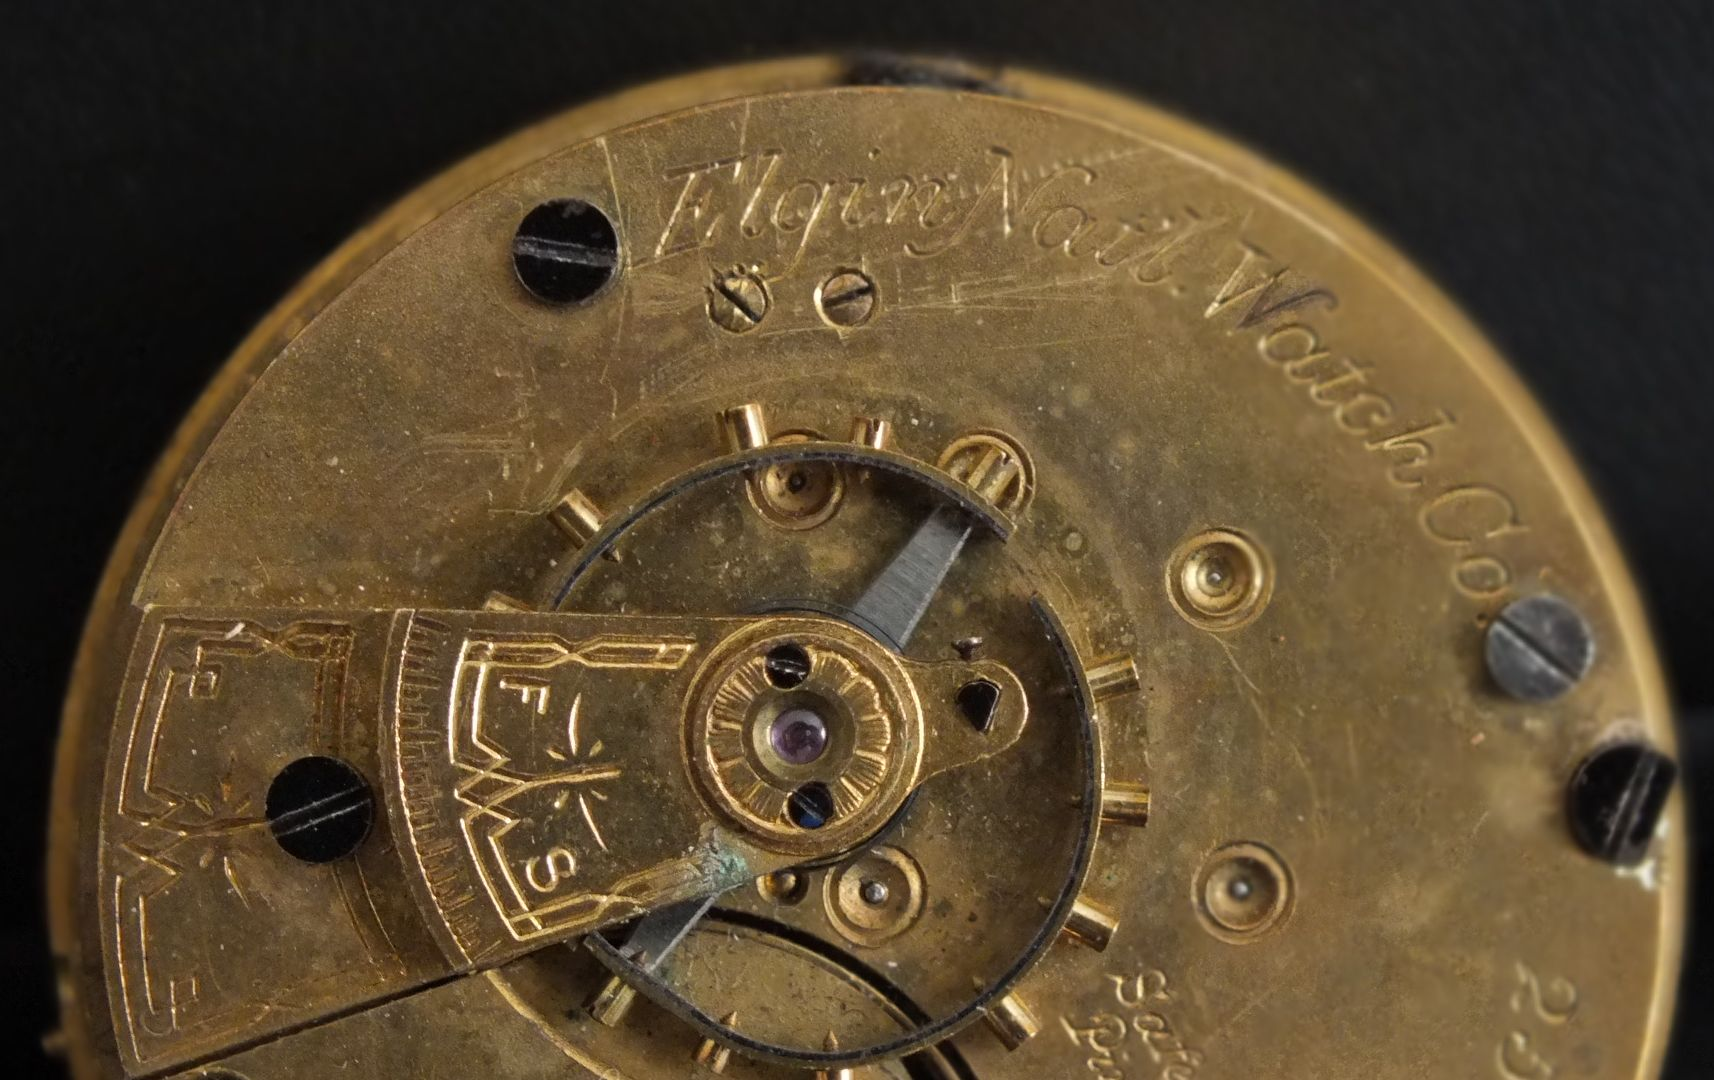 dating an elgin pocket watch by serial number Compare the serial number to lists on pocket watch sites, such as the watch guy, and antique pocket watch elgin and waltham.